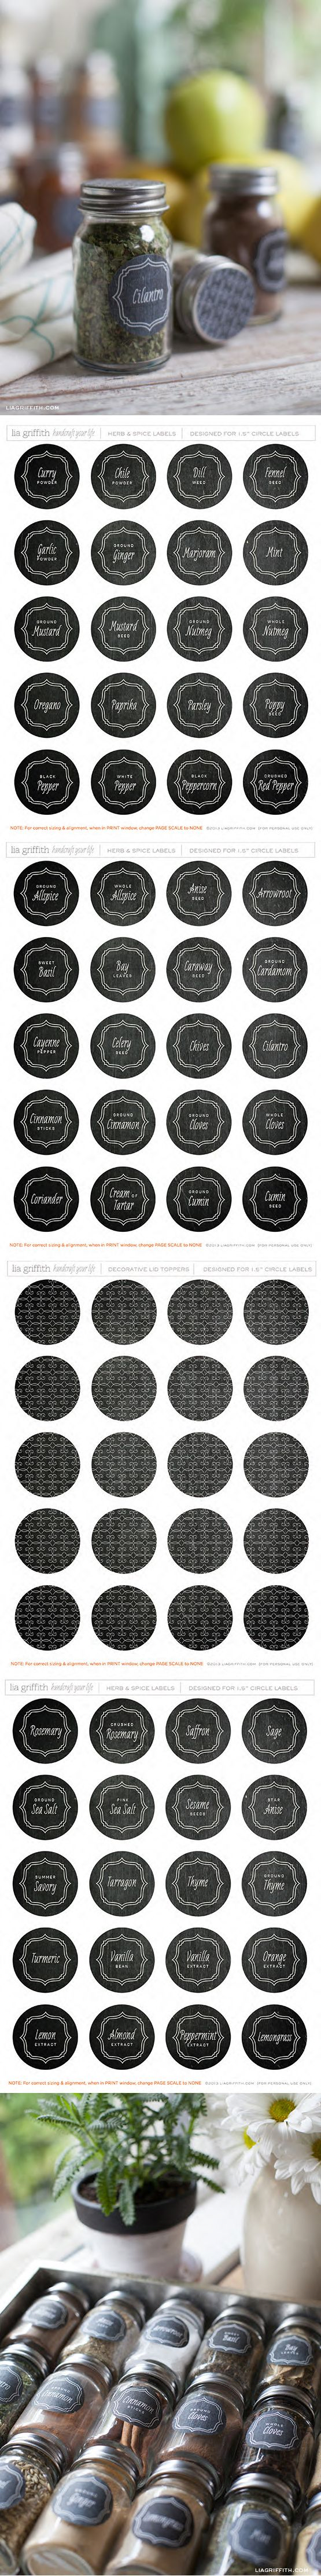 #papercraft #downloads #printables Free Printable Round Herb Spice Labels